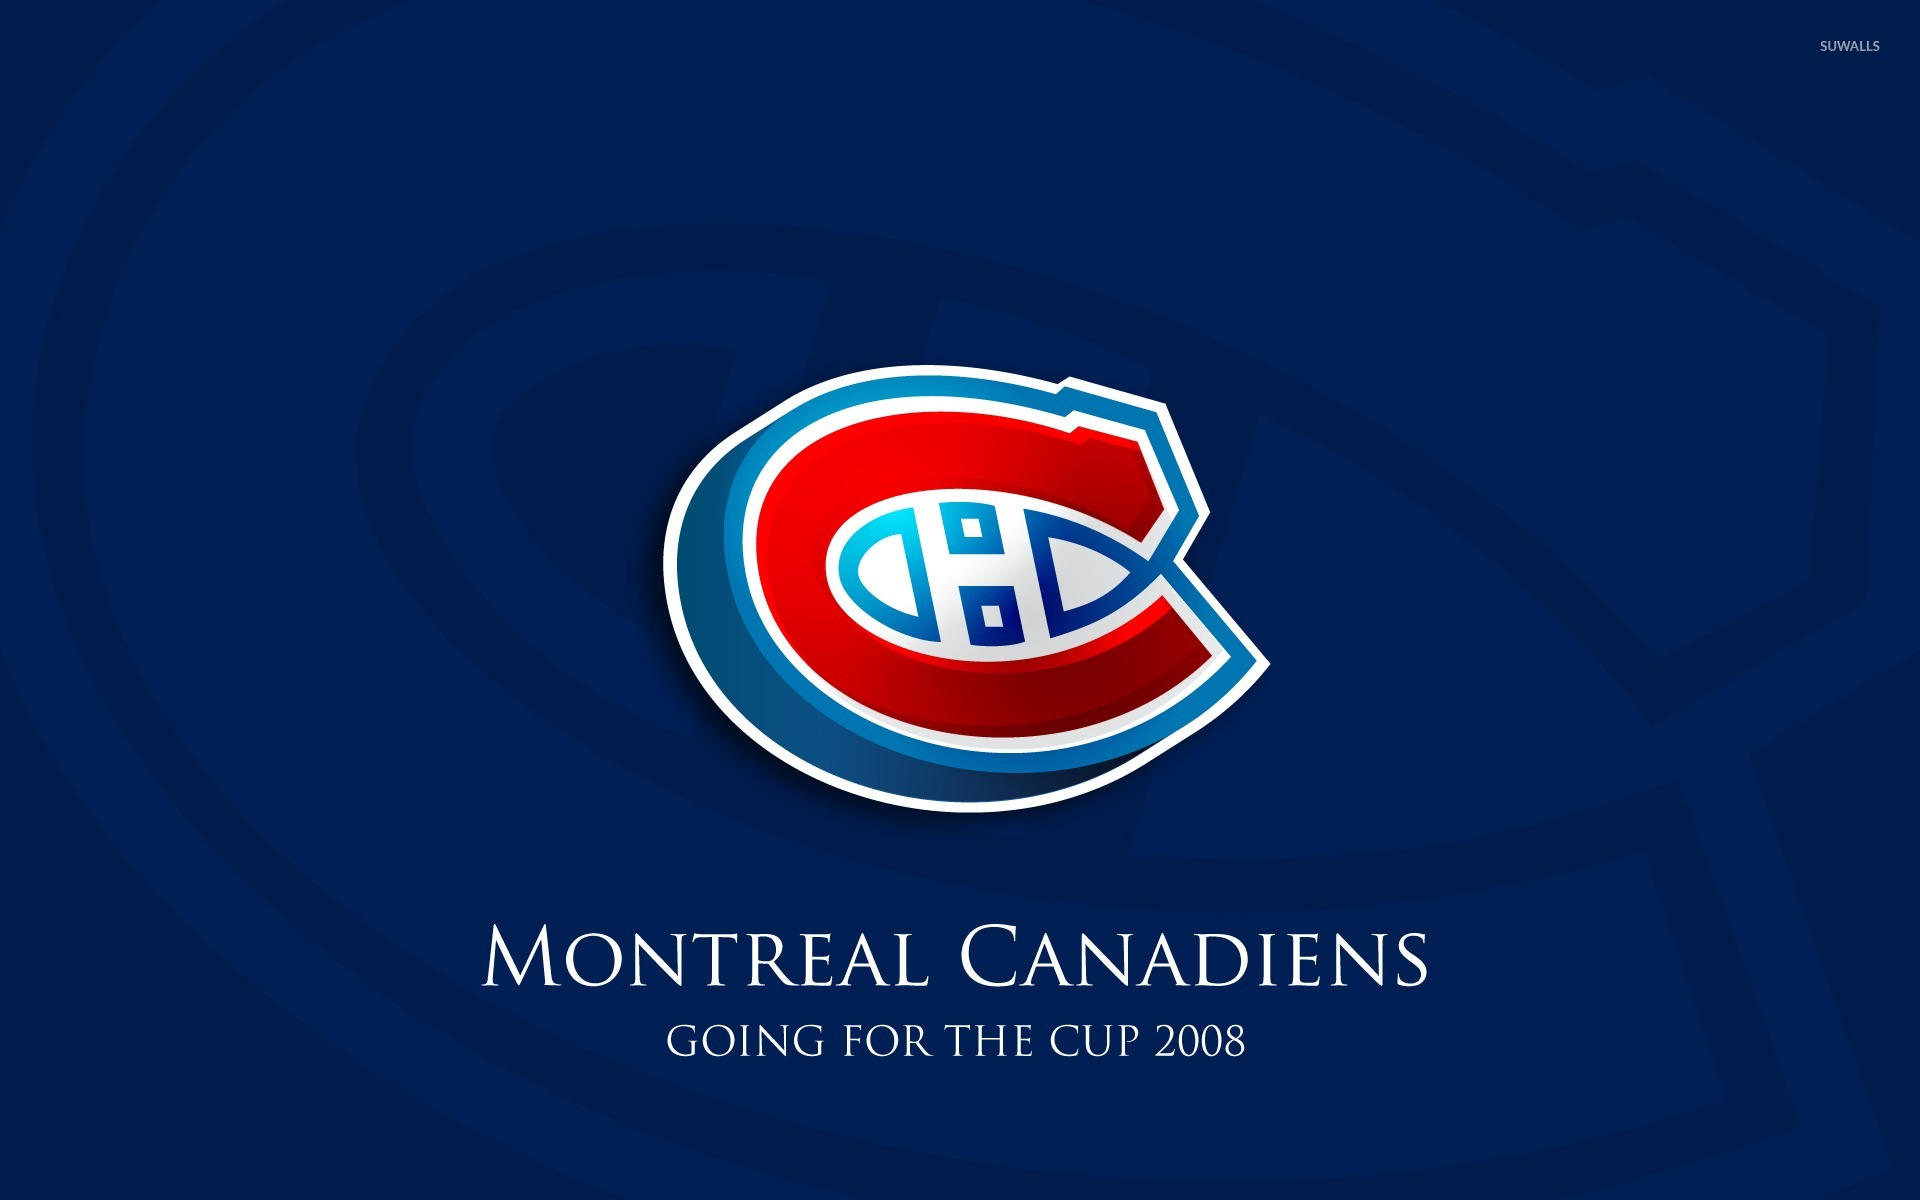 1920x1200 - Montreal Canadiens Wallpapers 10